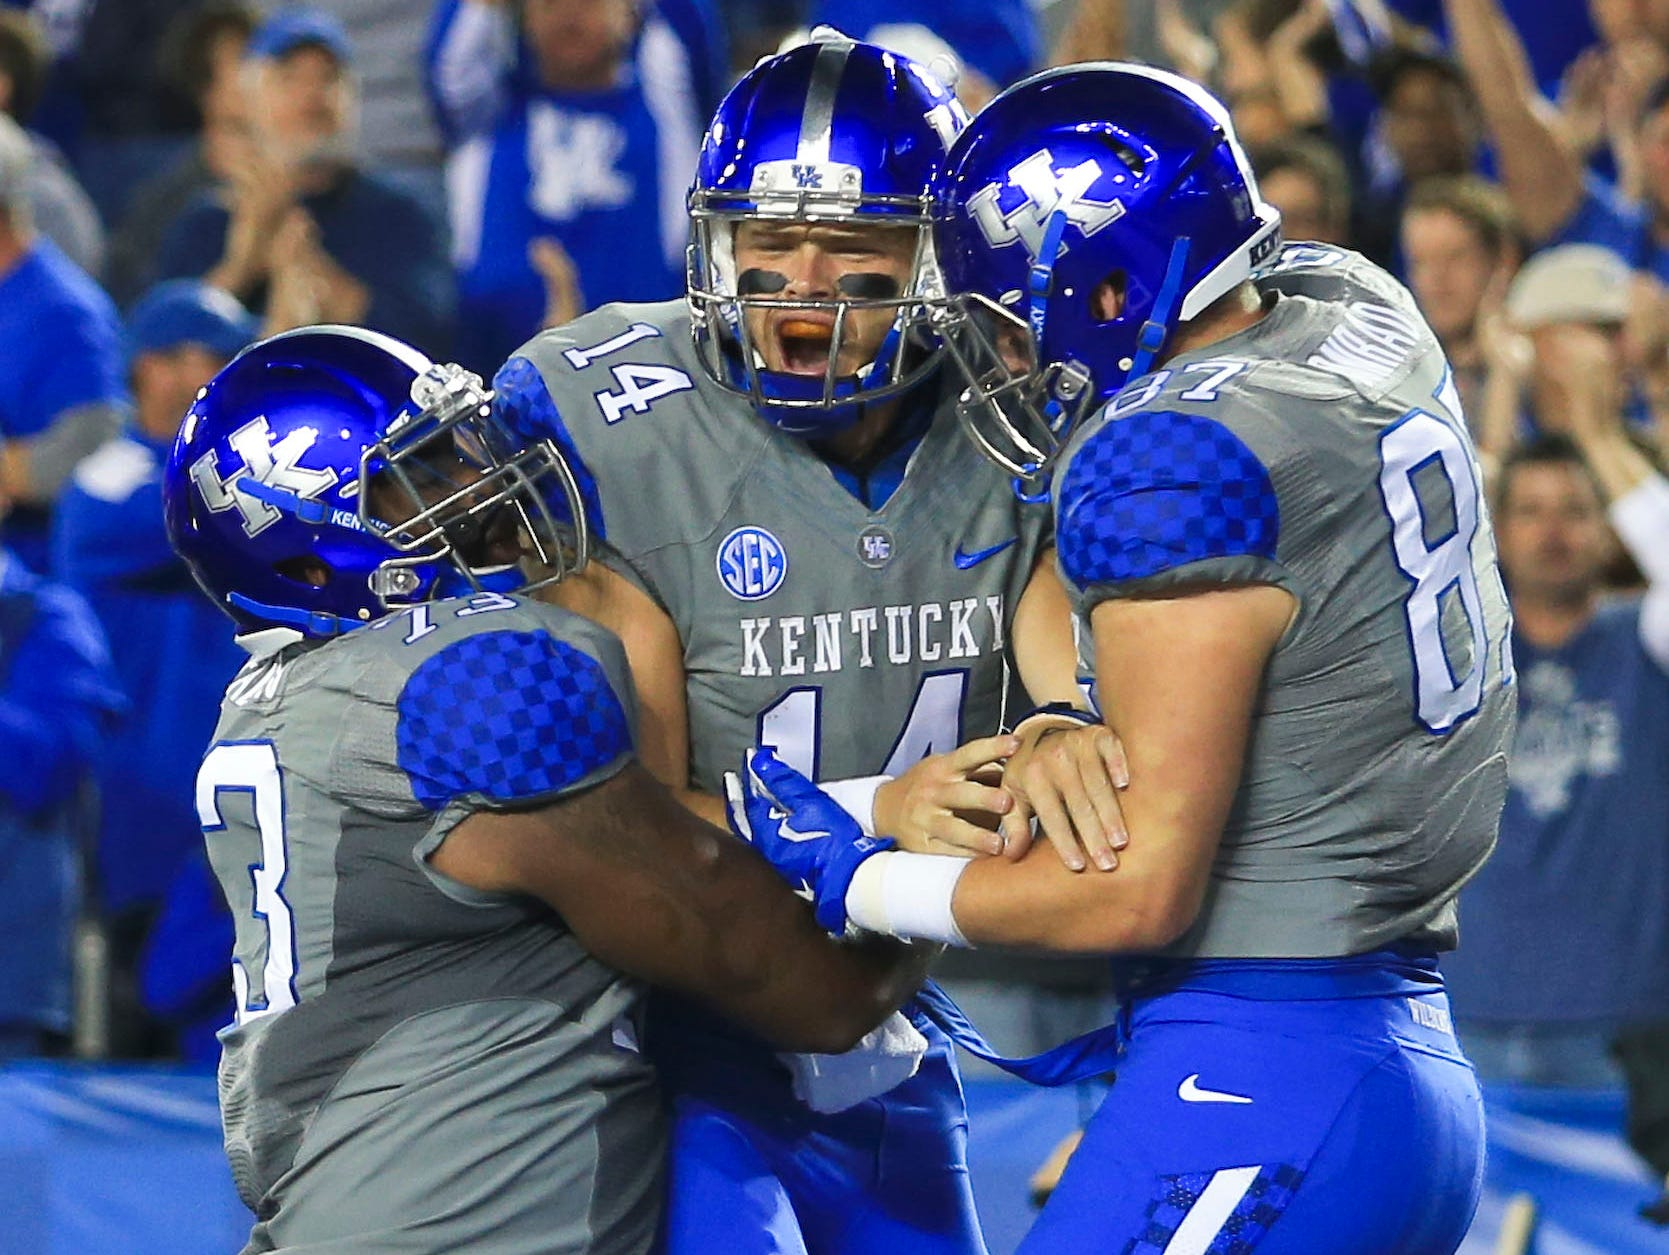 Patrick Towles celebrates his touchdown with teammates C.J Conrad and Kyle Meadows after scoring against Missouri in the first half. Sept. 26, 2015